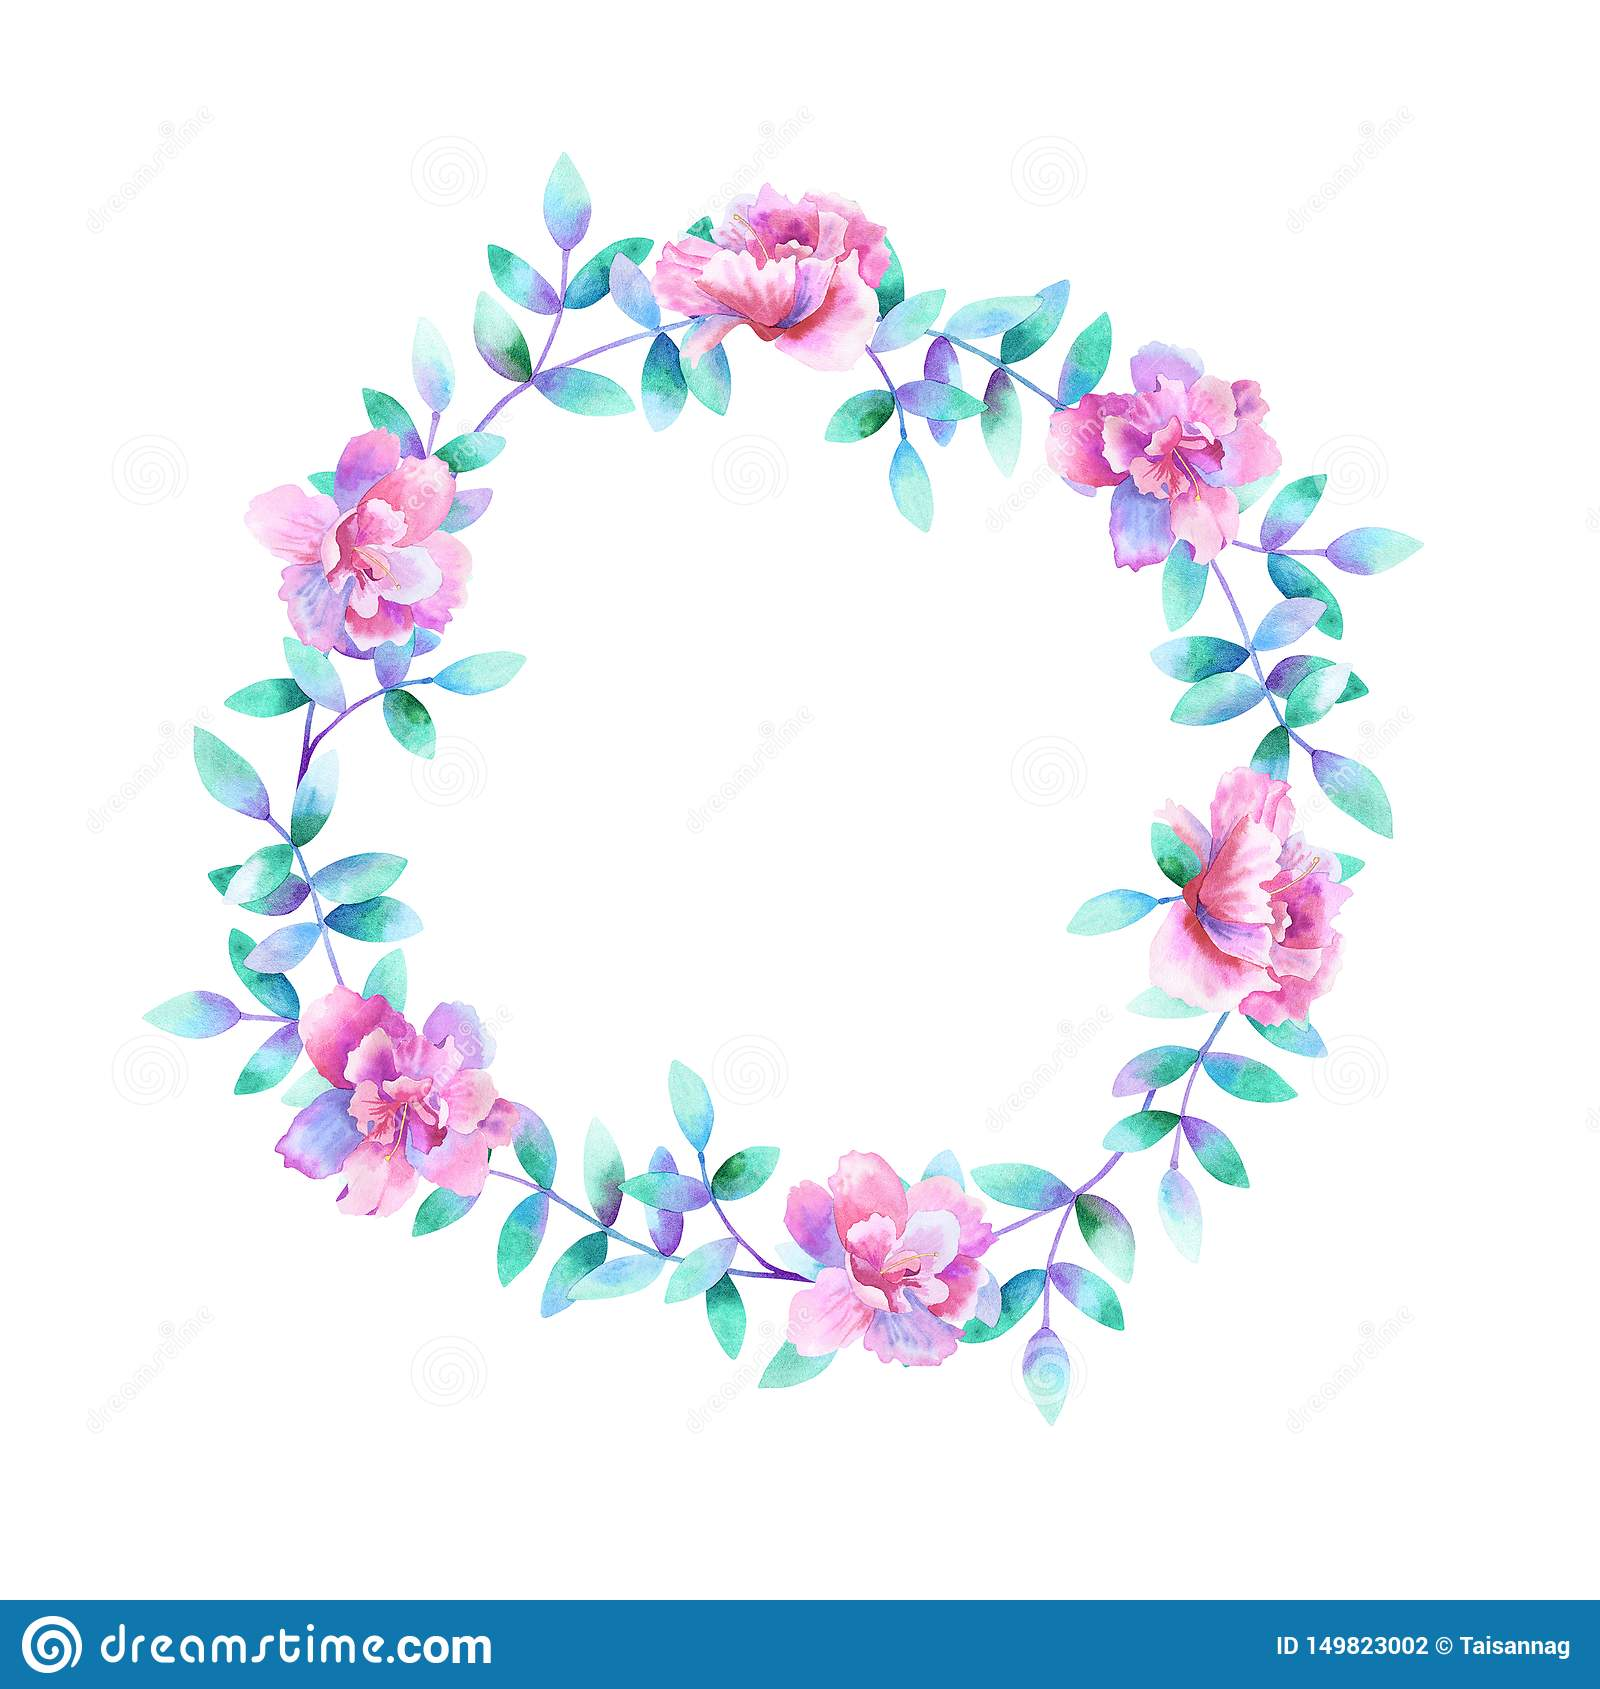 Watercolor round floral frame. Template for design. Perfect for wedding invitations, greeting cards, natural cosmetics